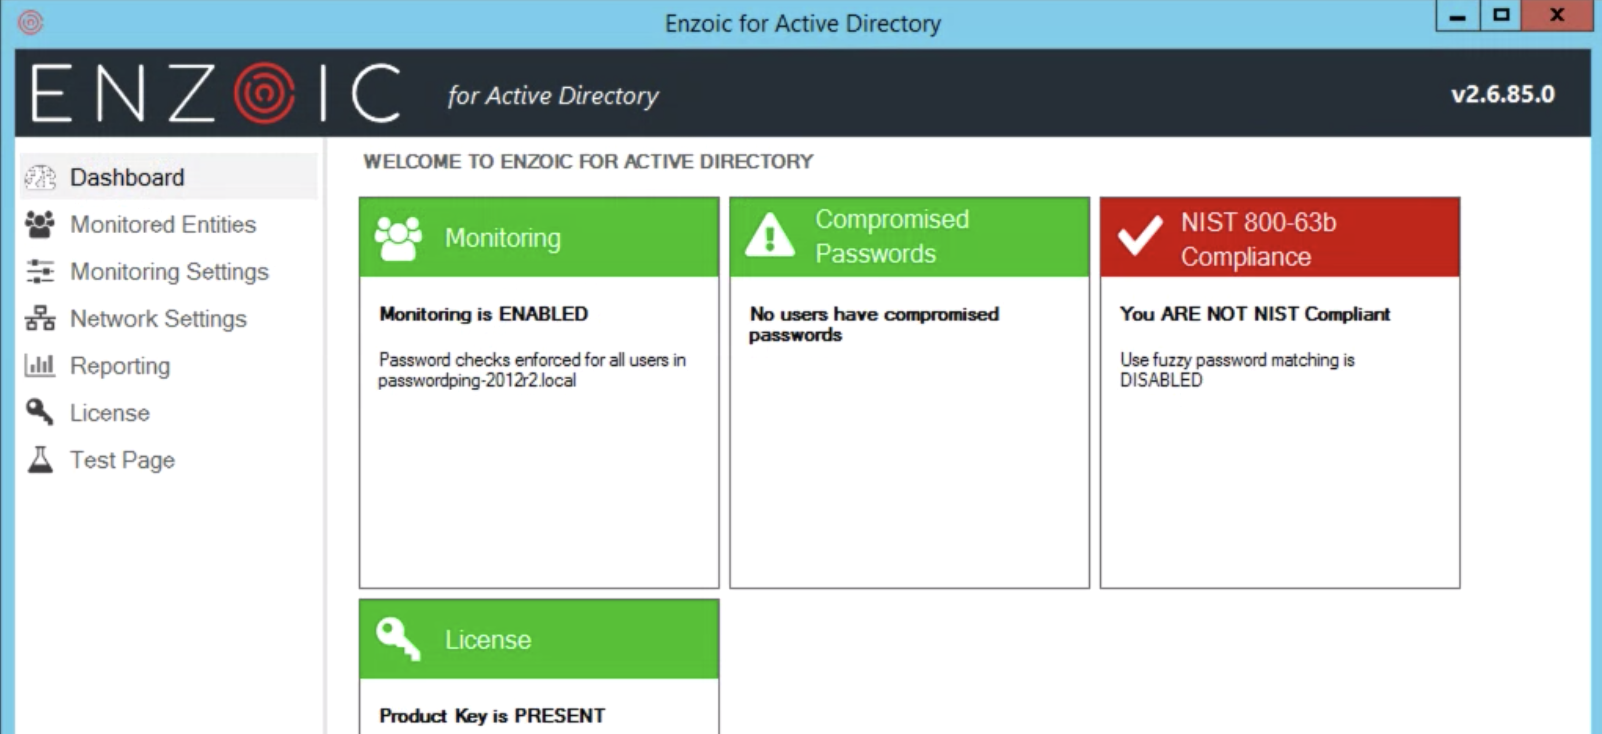 Enzoic for Active Directory 2.6 Dashboard